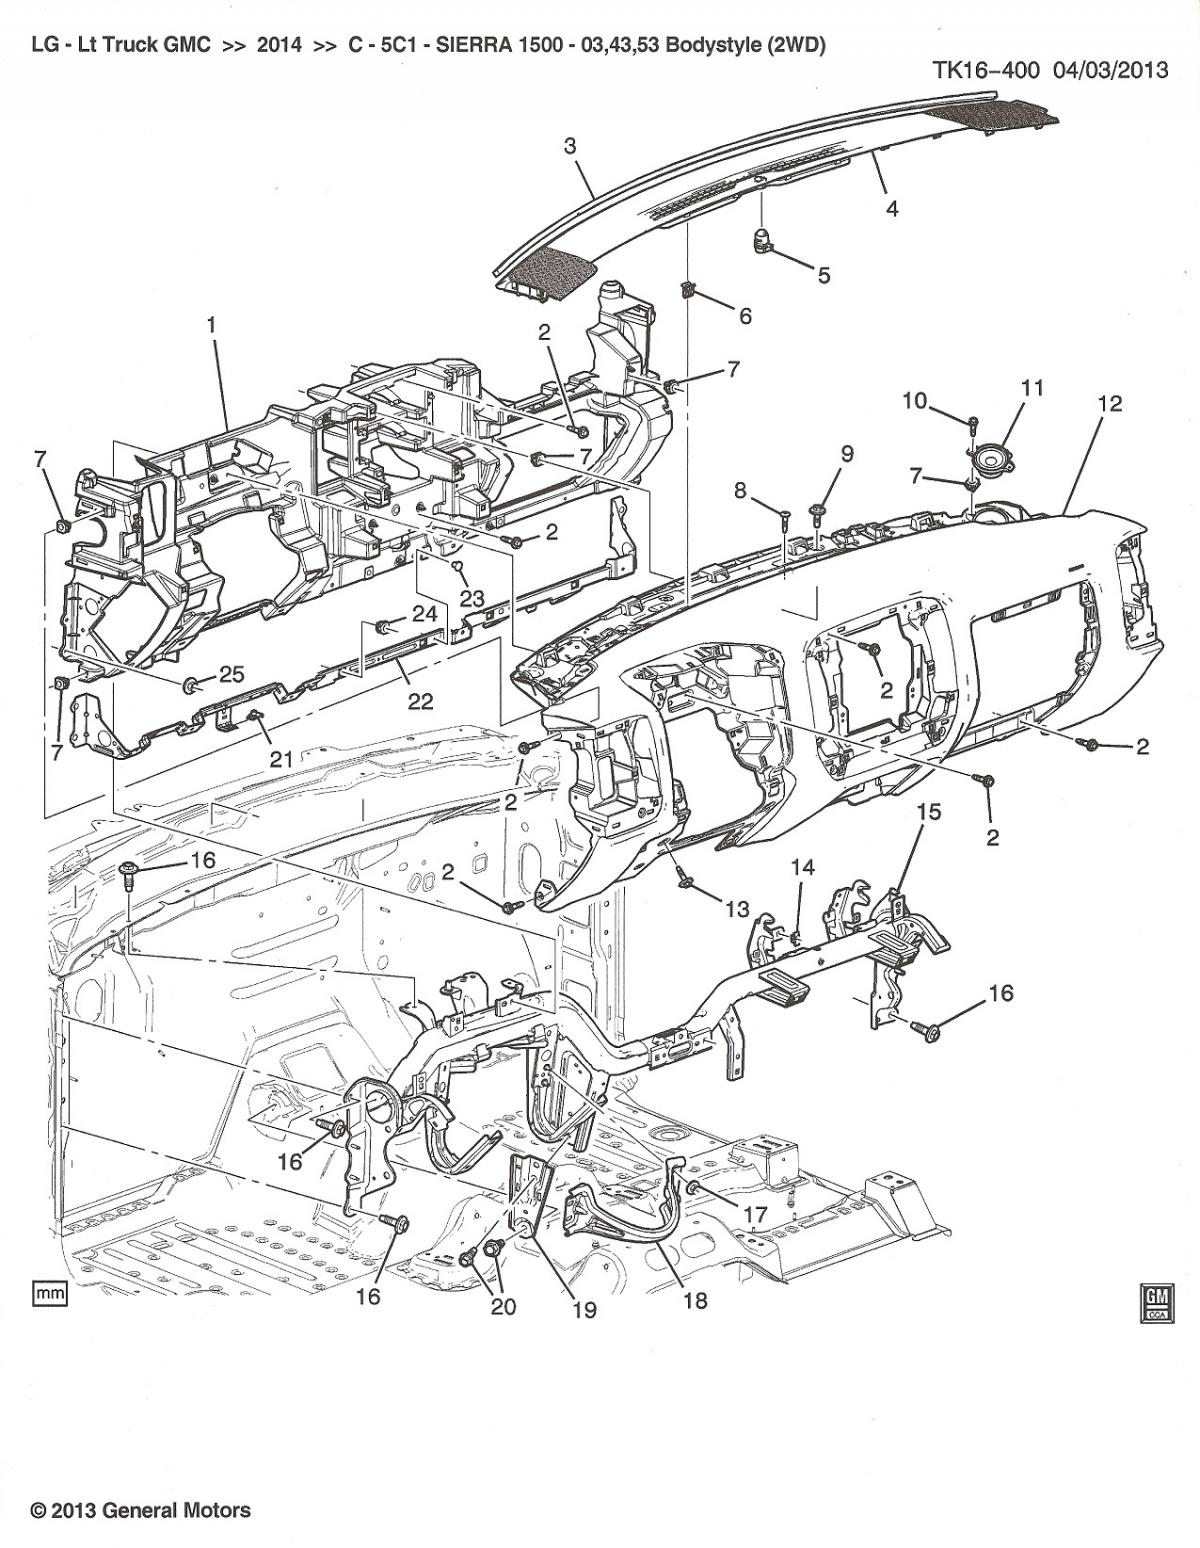 [DIAGRAM] 98 Chevy Silverado Service Manual Wiring